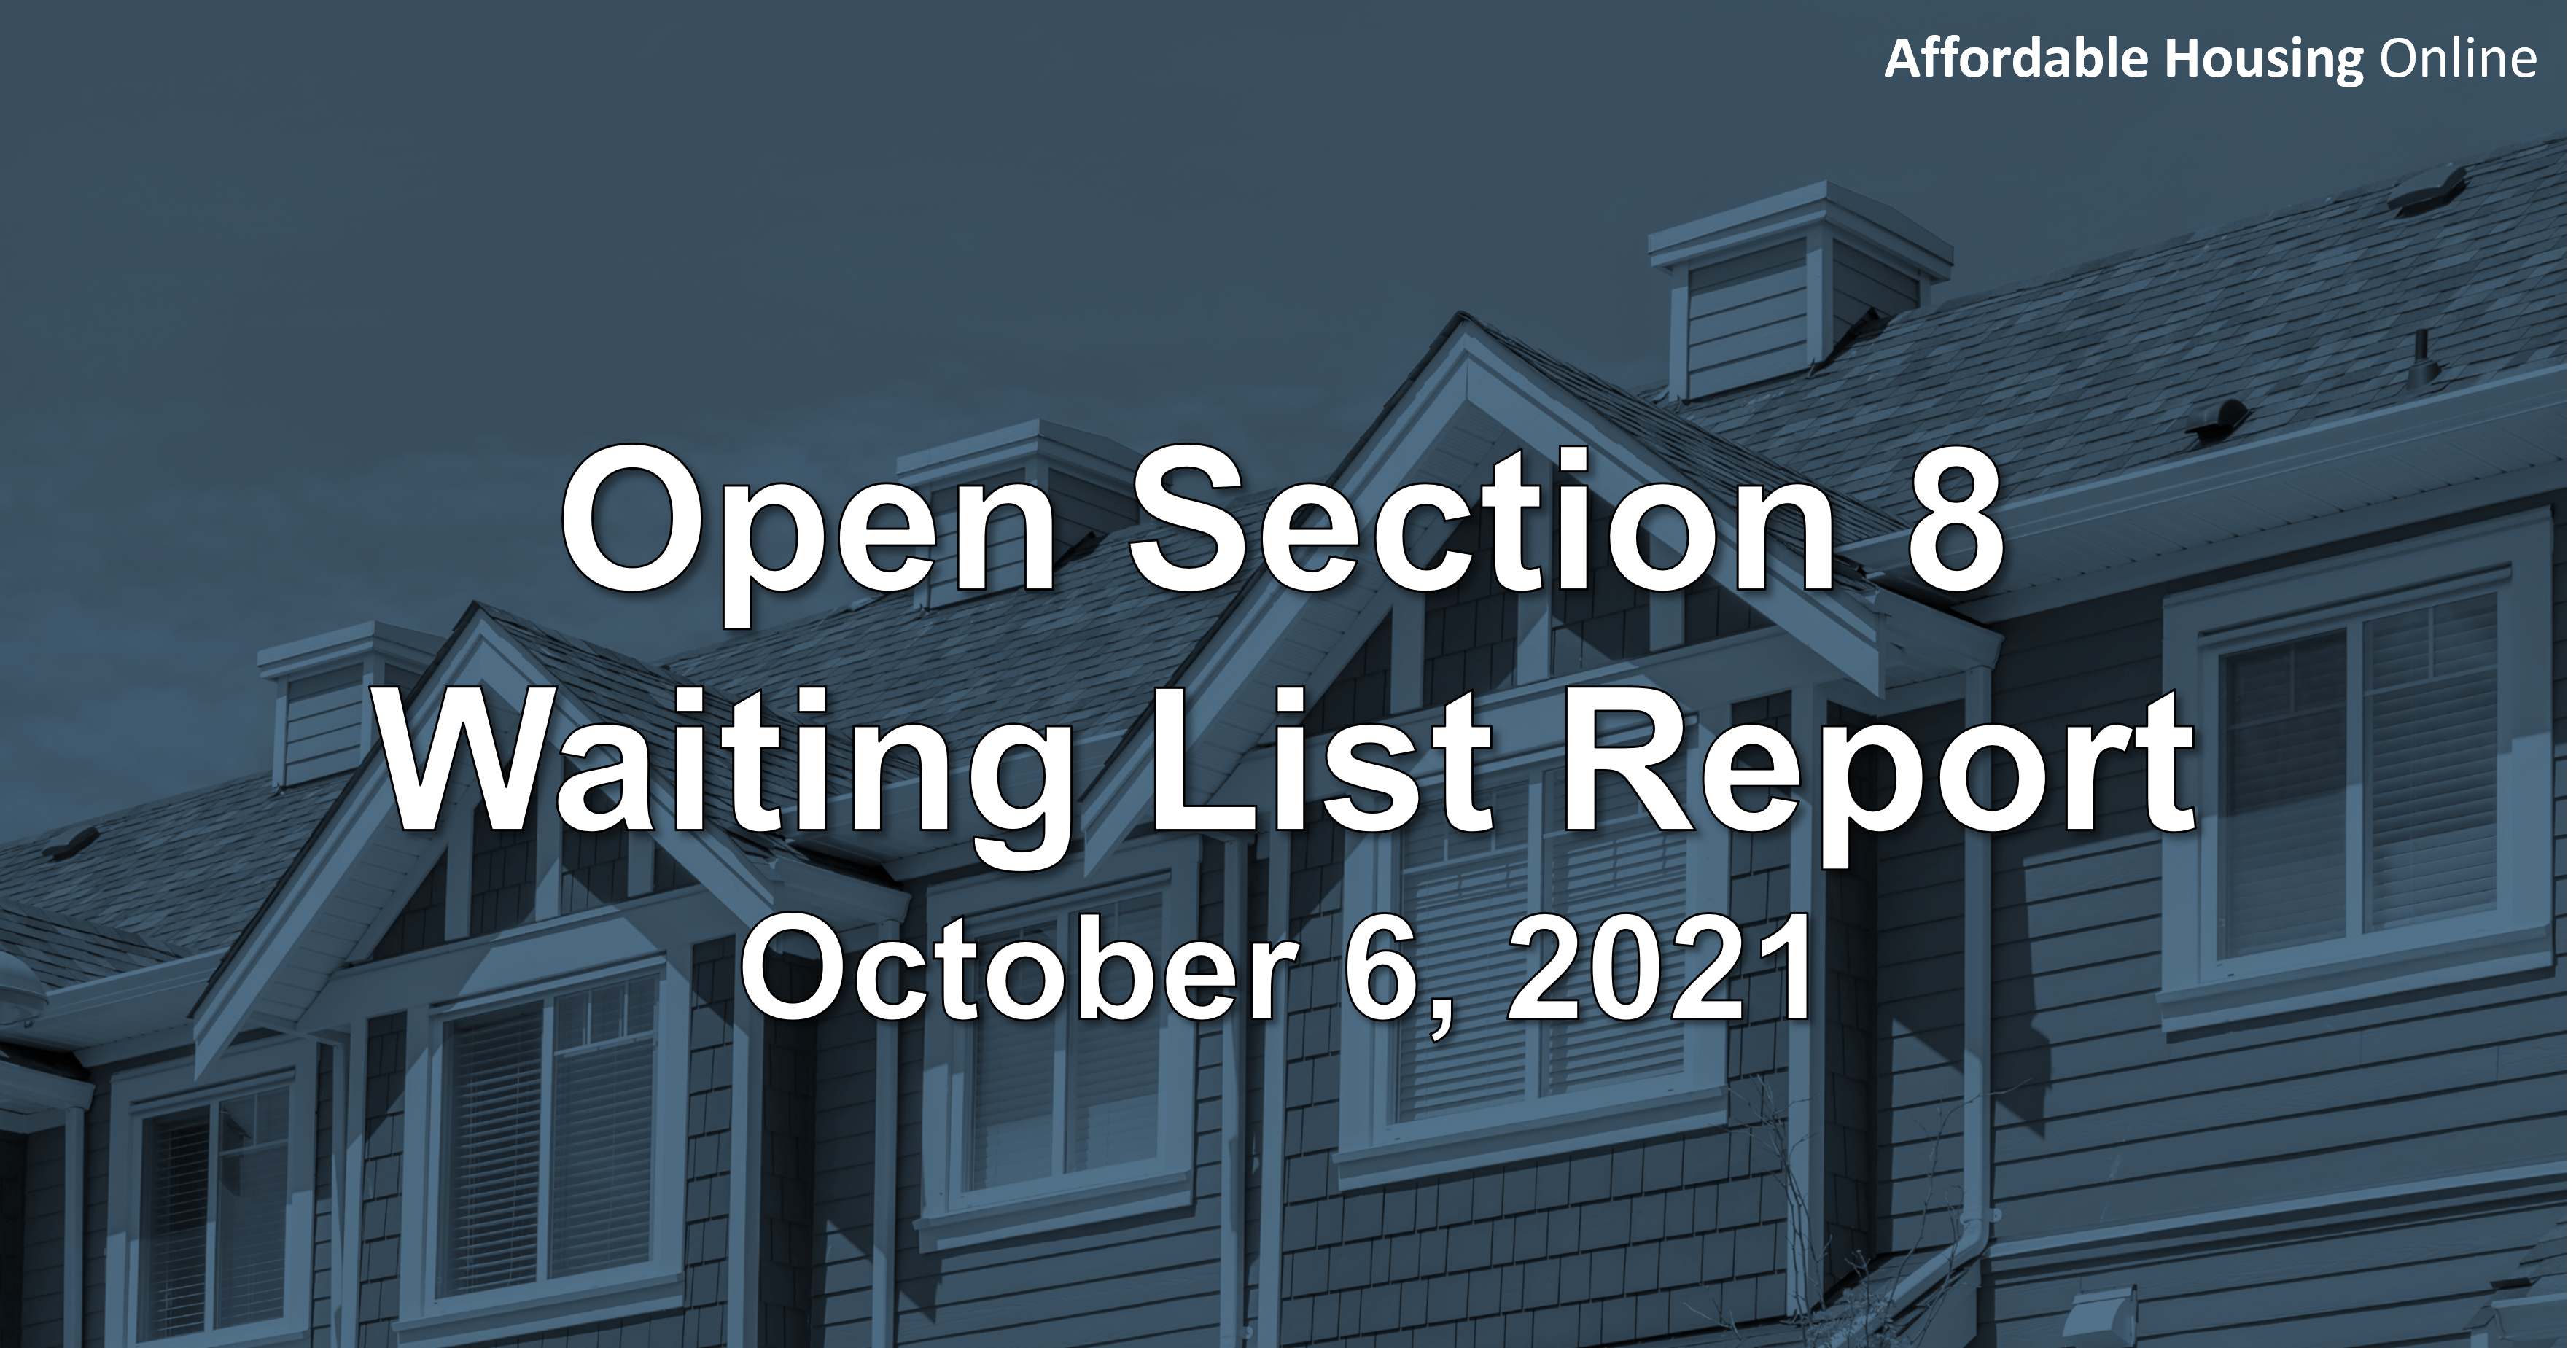 Open Section 8 Waiting List Report: October 6, 2021